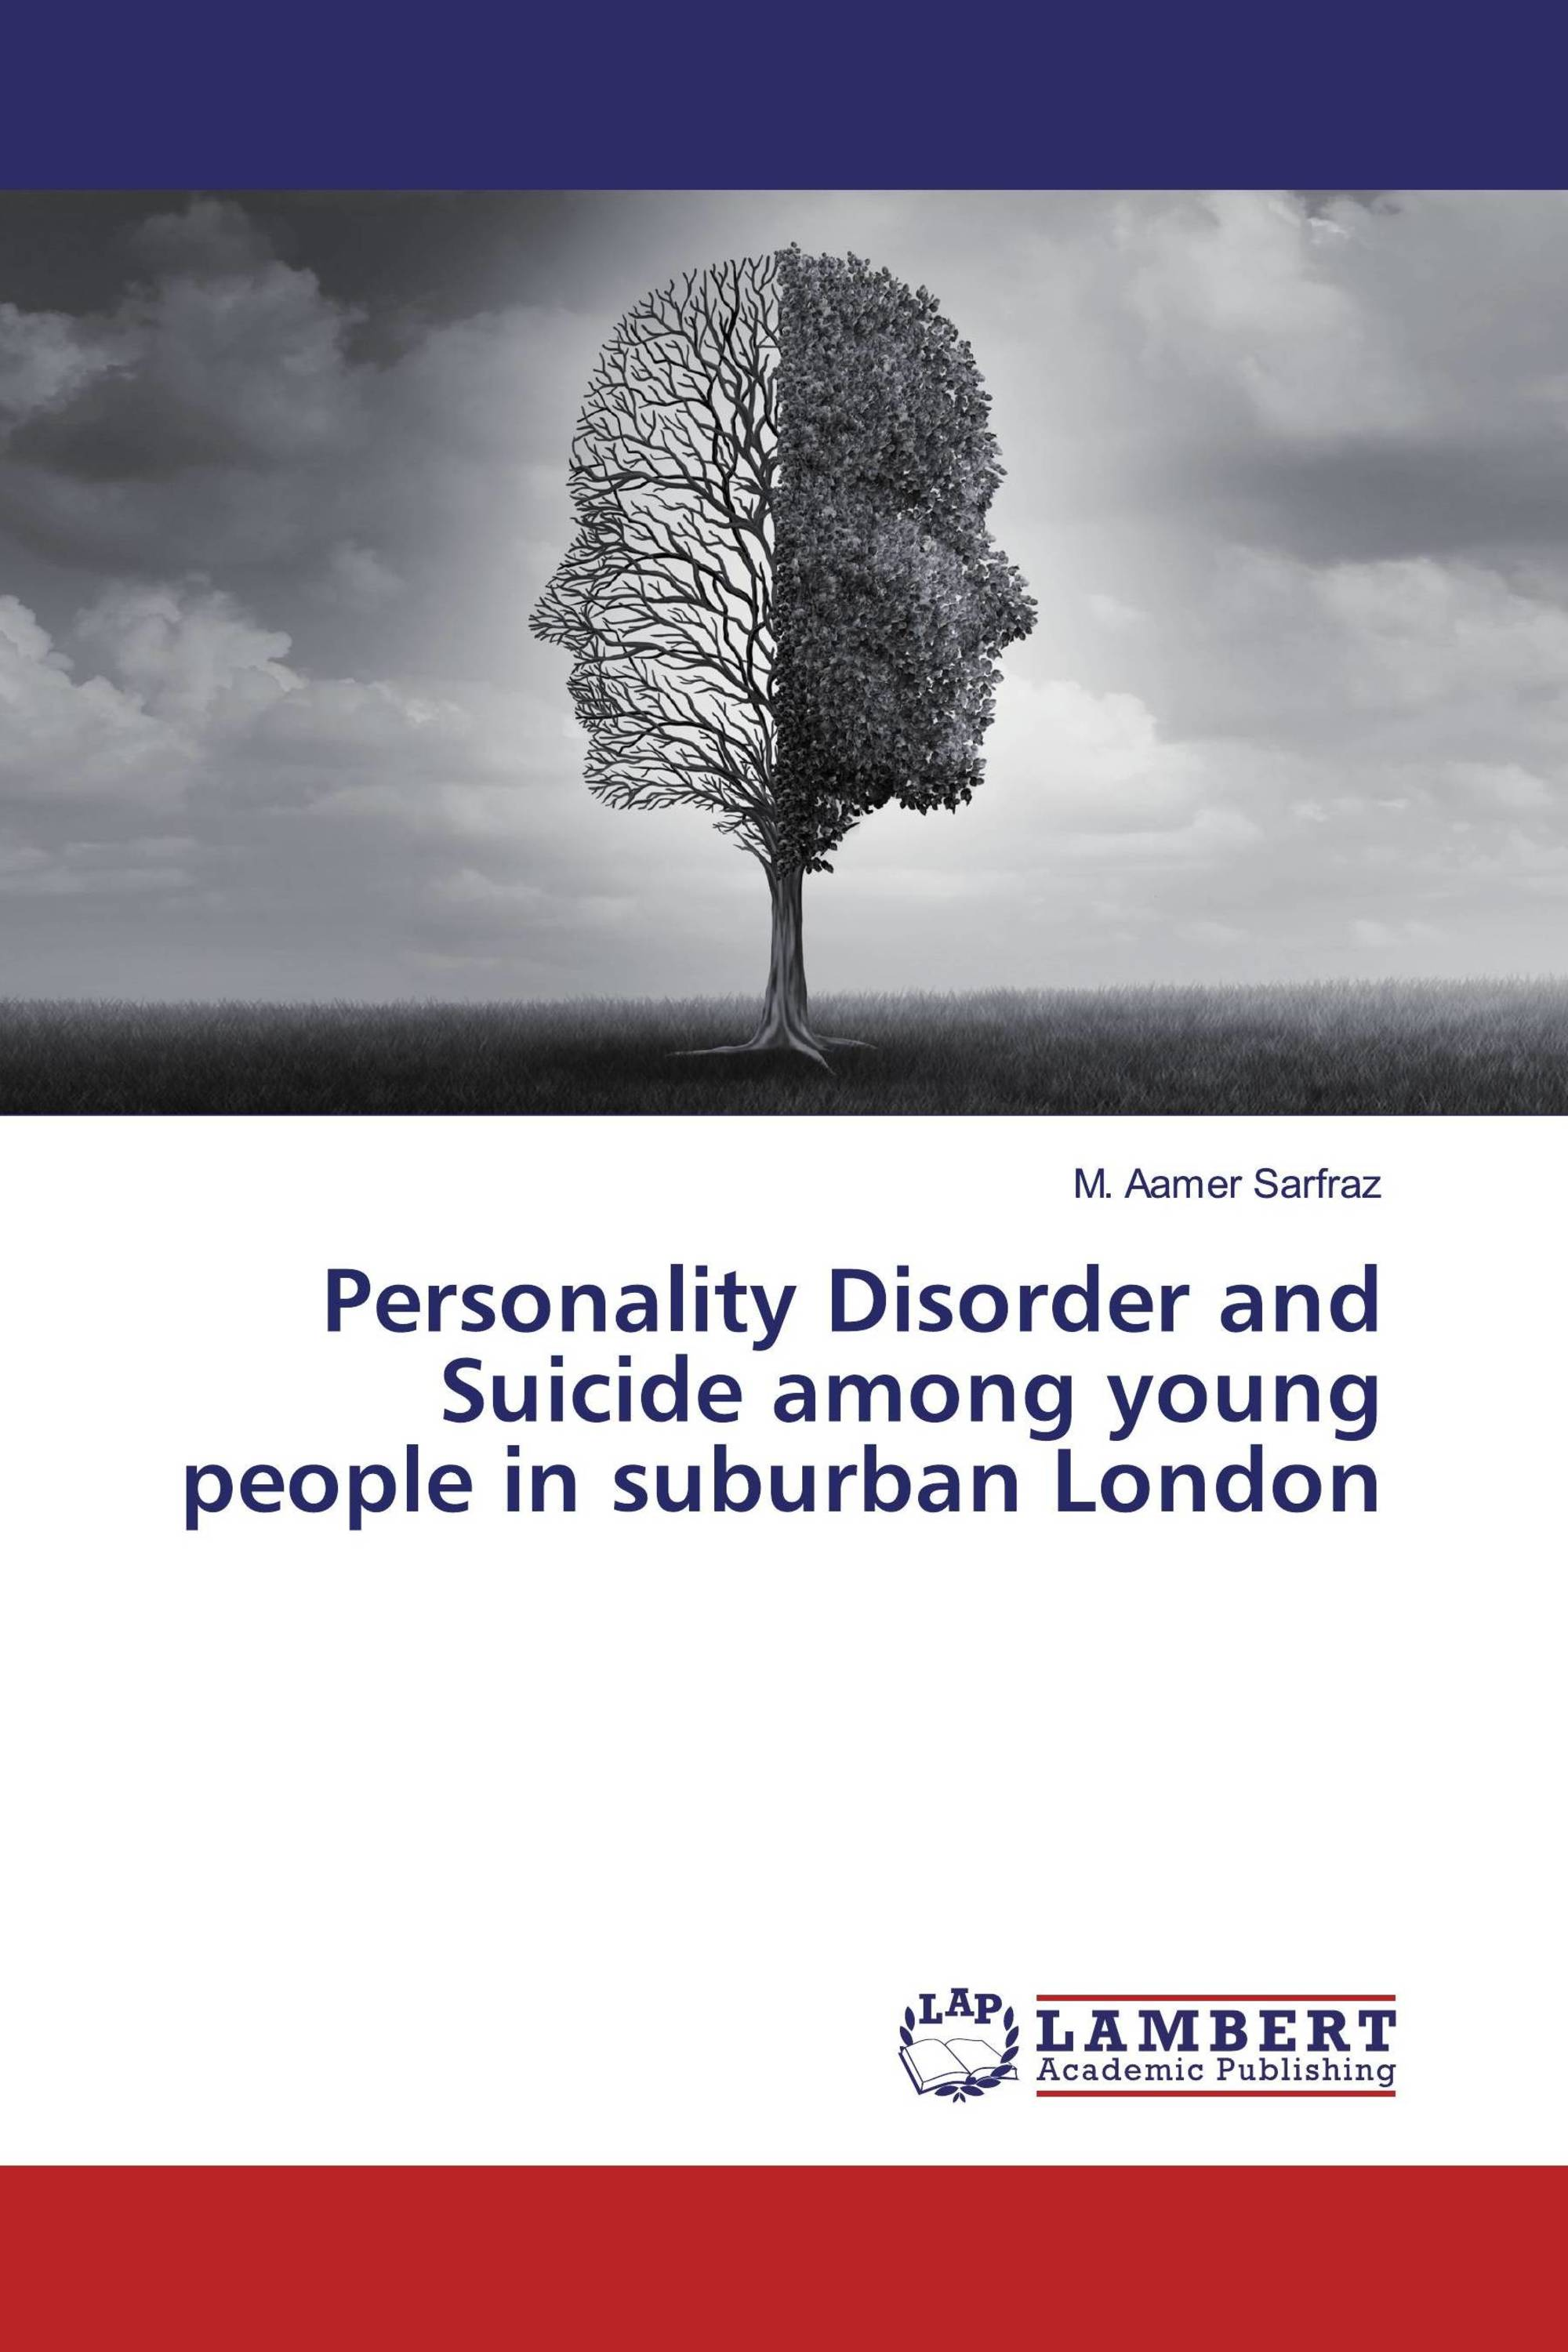 Personality Disorder and Suicide among young people in suburban London